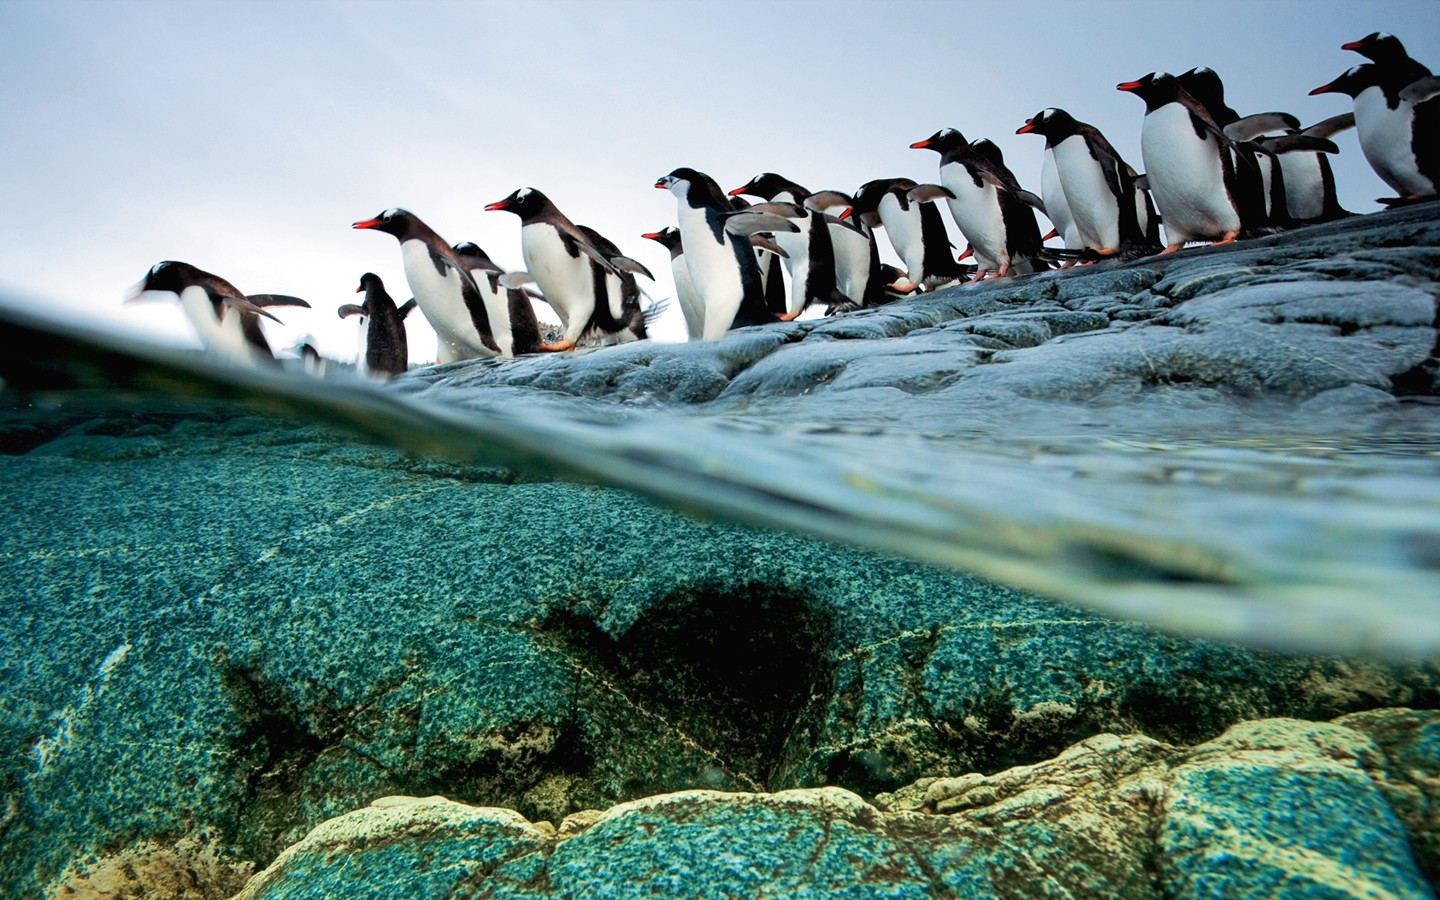 The gentoo penguins of Antarctica queuing Diving 31529